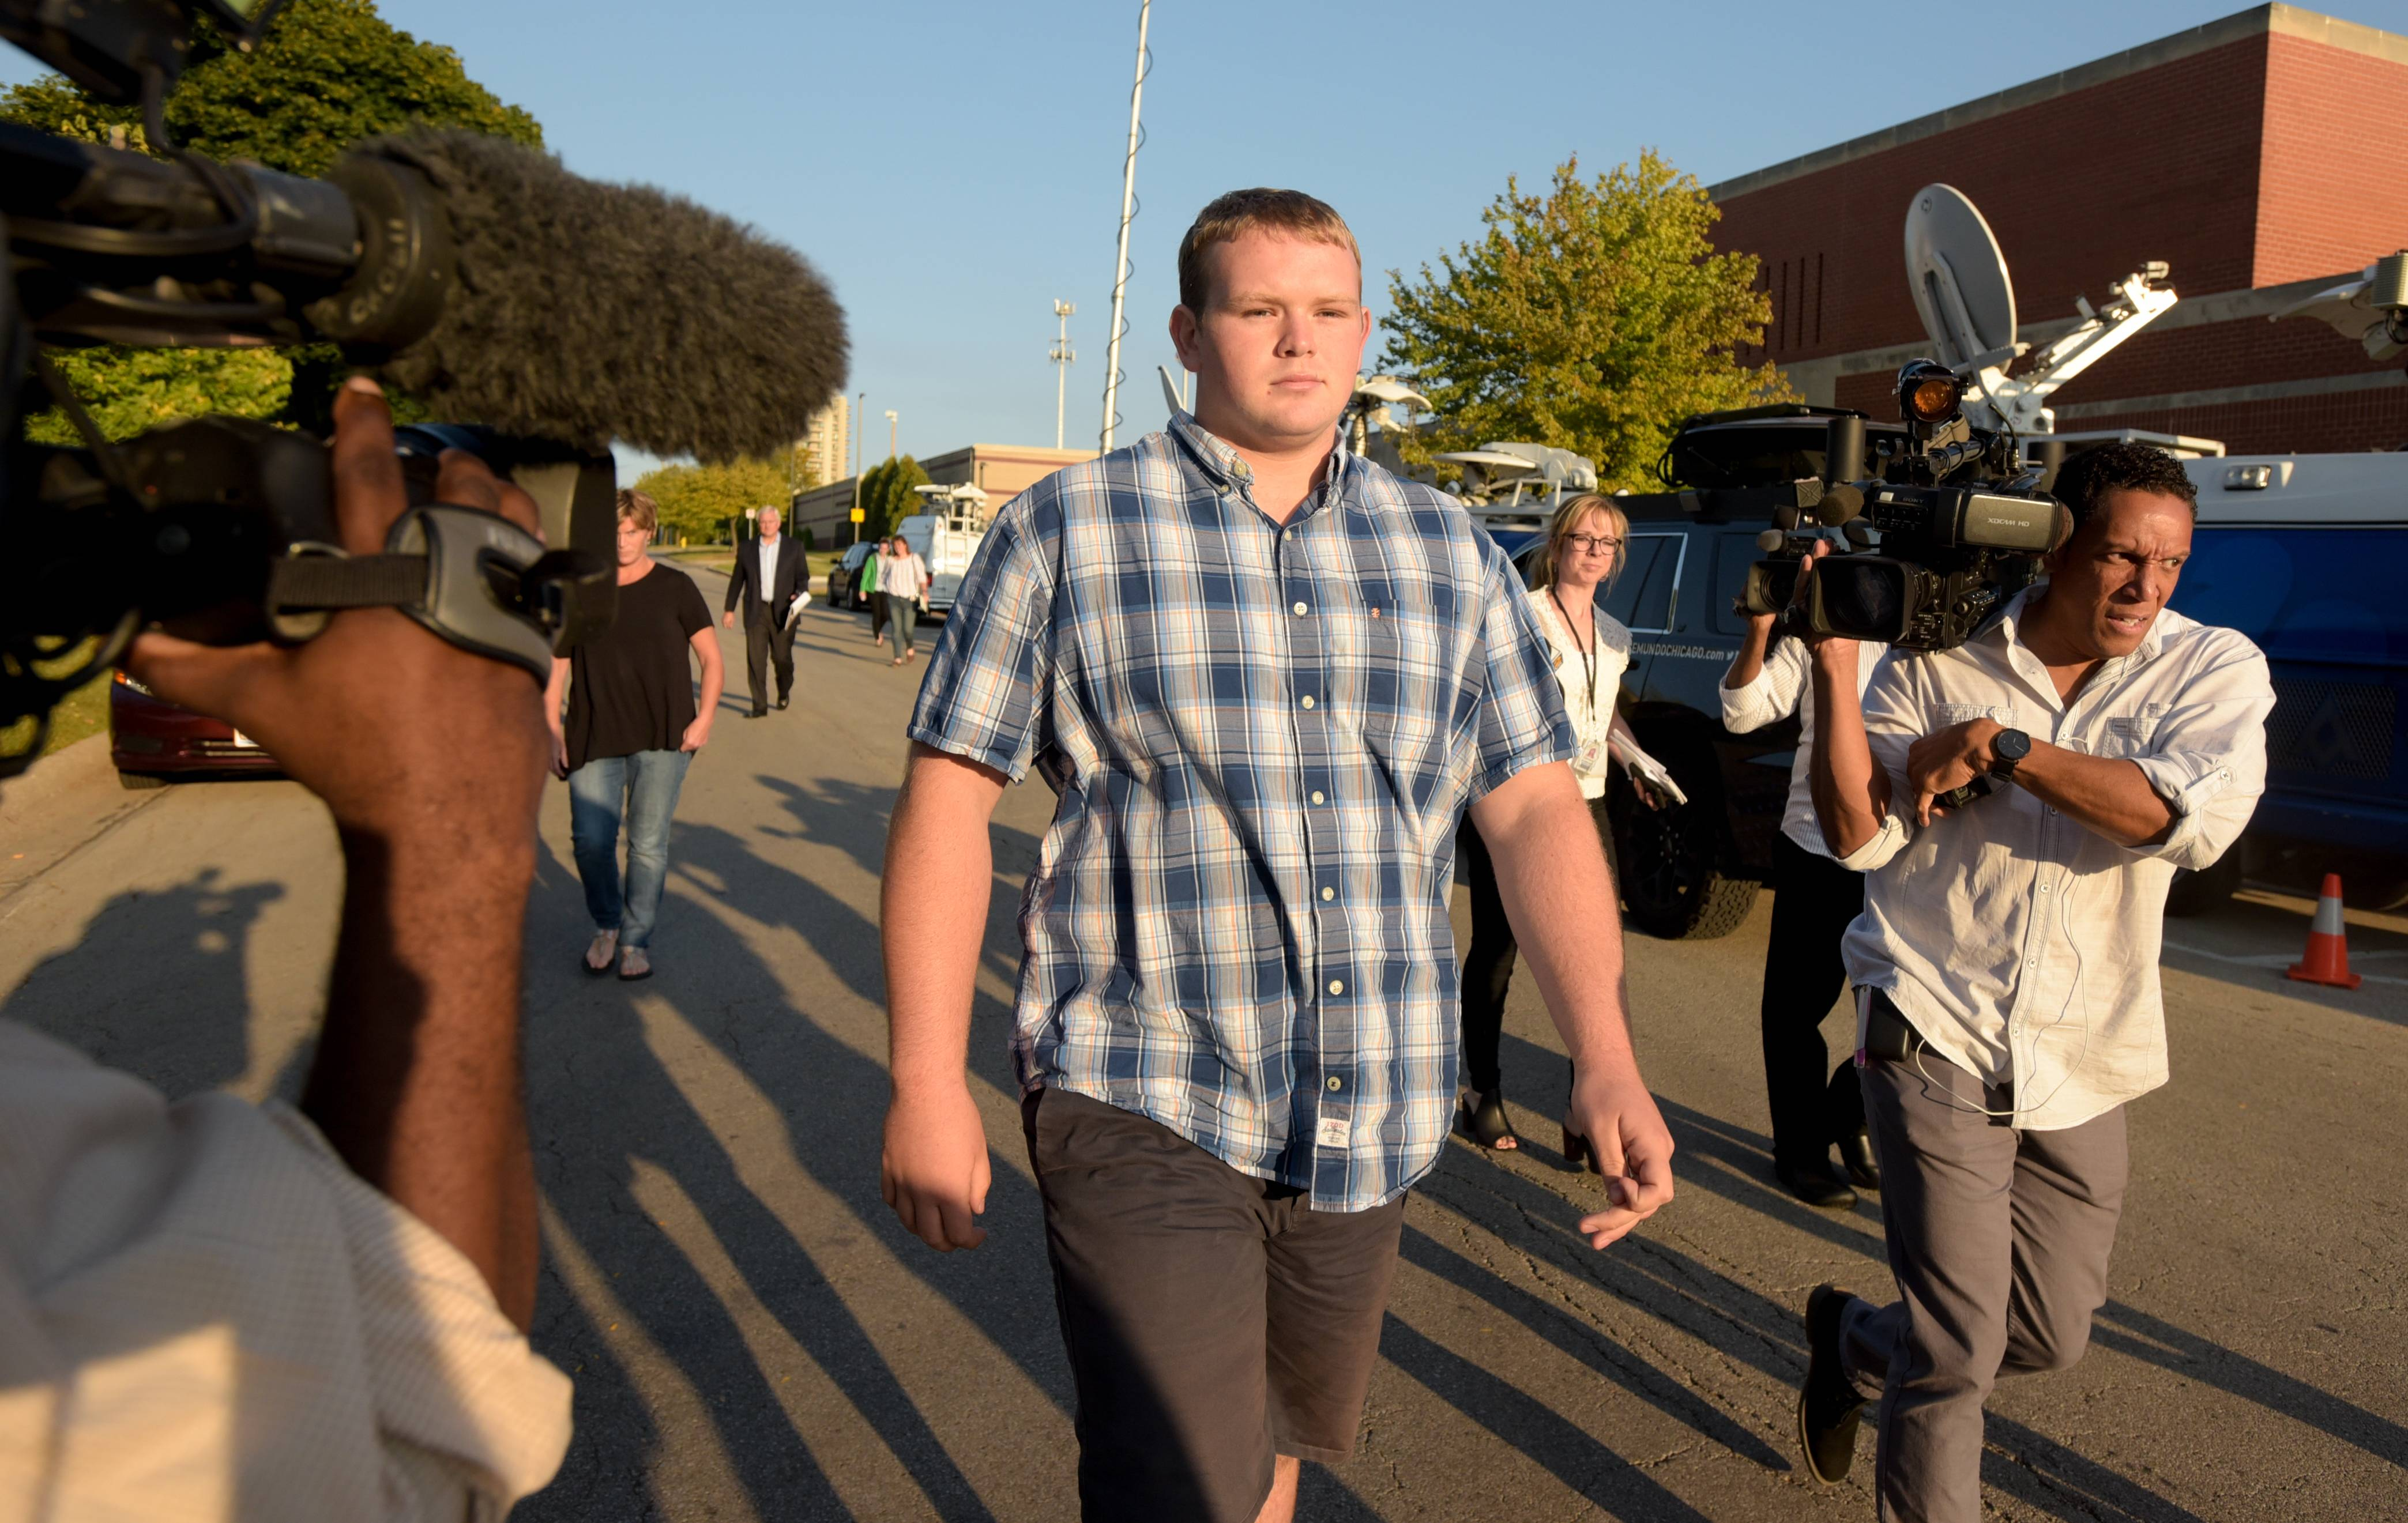 Wheaton College football player Kyler Kregel leaves the Wheaton police station Tuesday after posting bail.